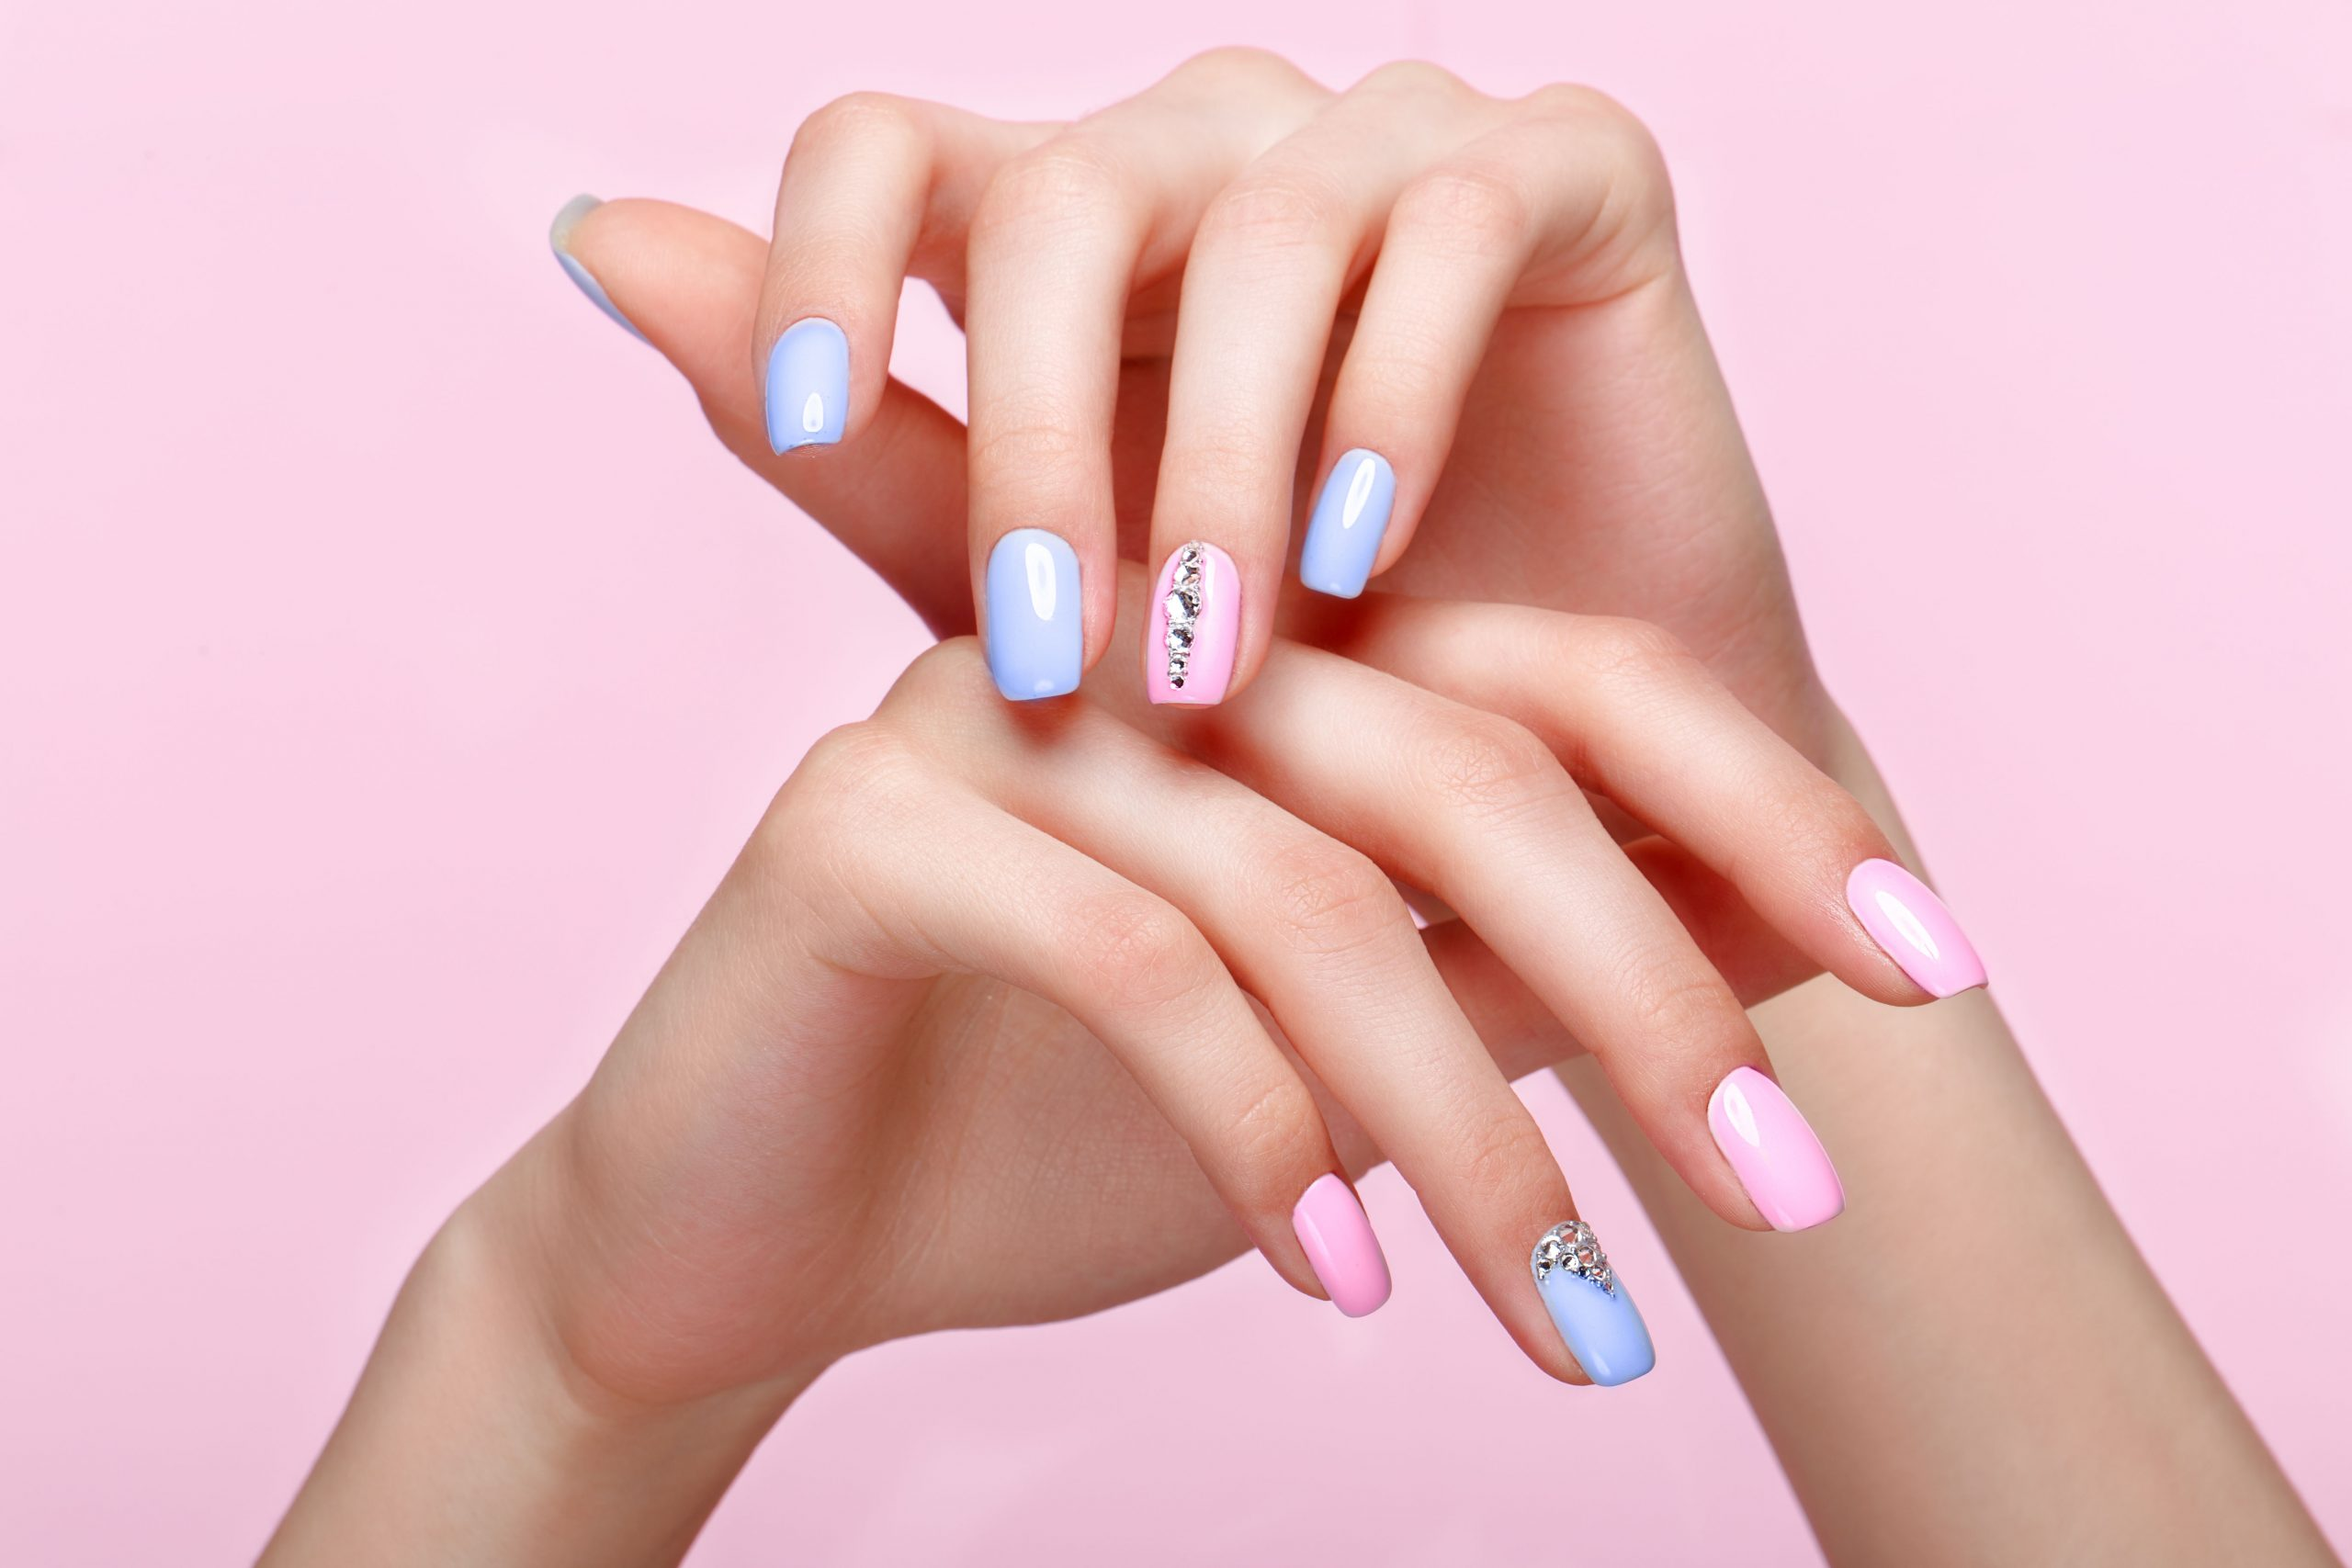 Beautiful,Pink,And,Blue,Manicure,With,Crystals,On,Female,Hand.